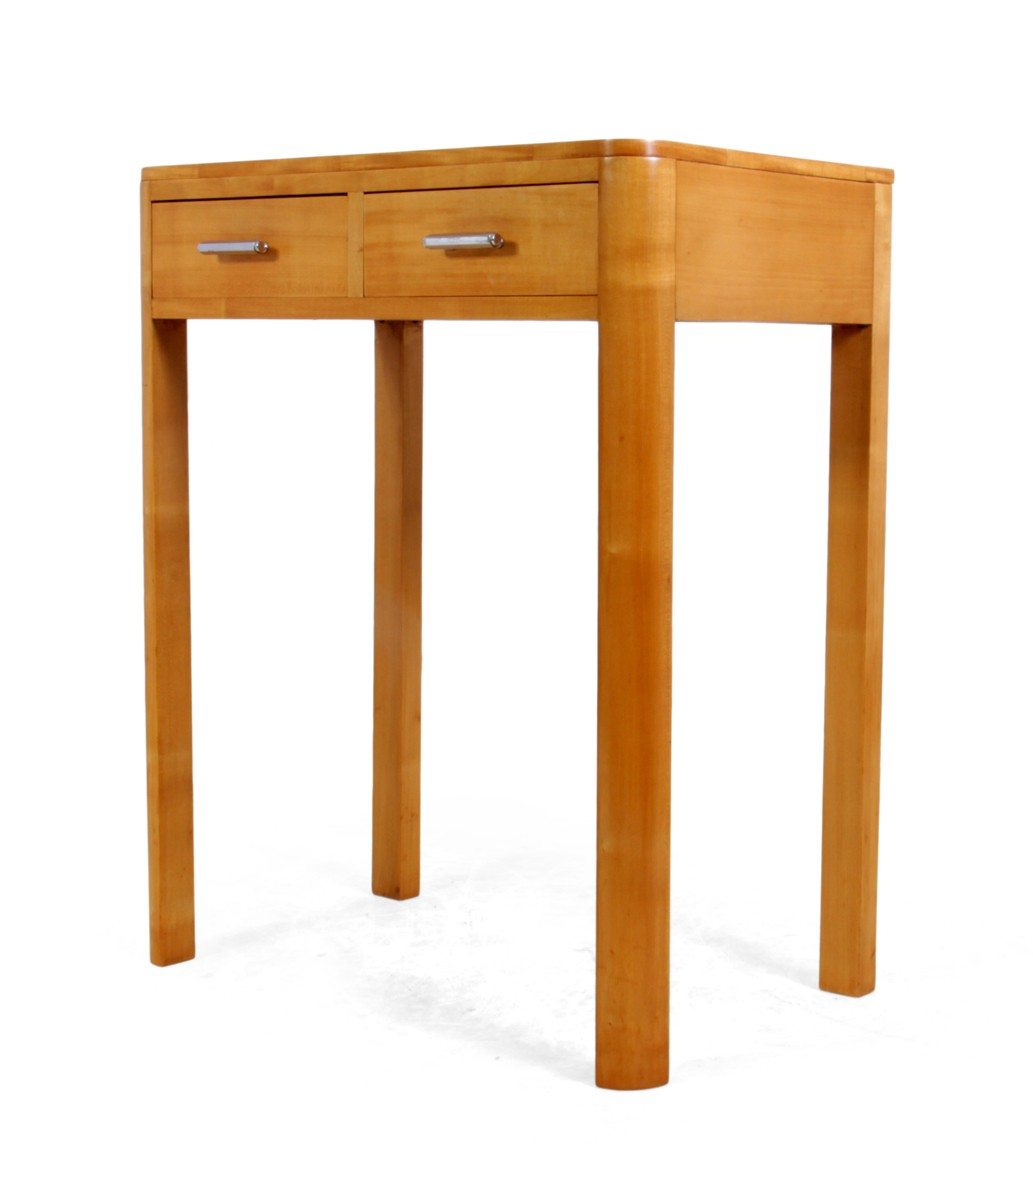 Satin Birch Side Table With Drawers 1930 Previous Next